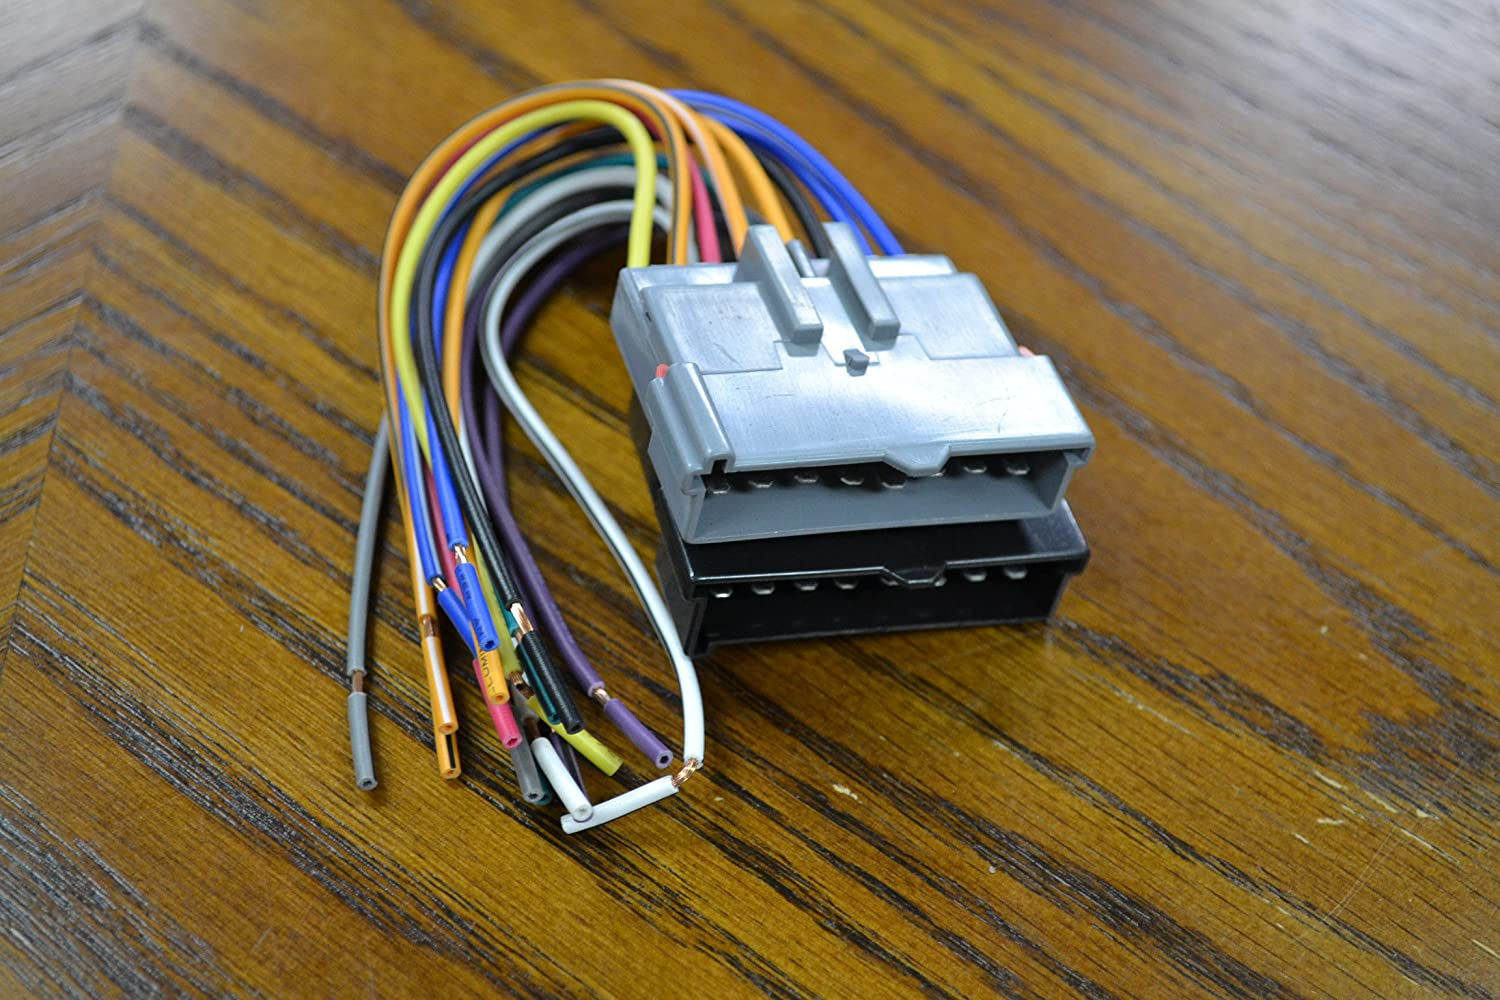 Metra Electronics Ibr Whfd2 Frd Lncn Merc 86 Up Automotive Wiring Harness